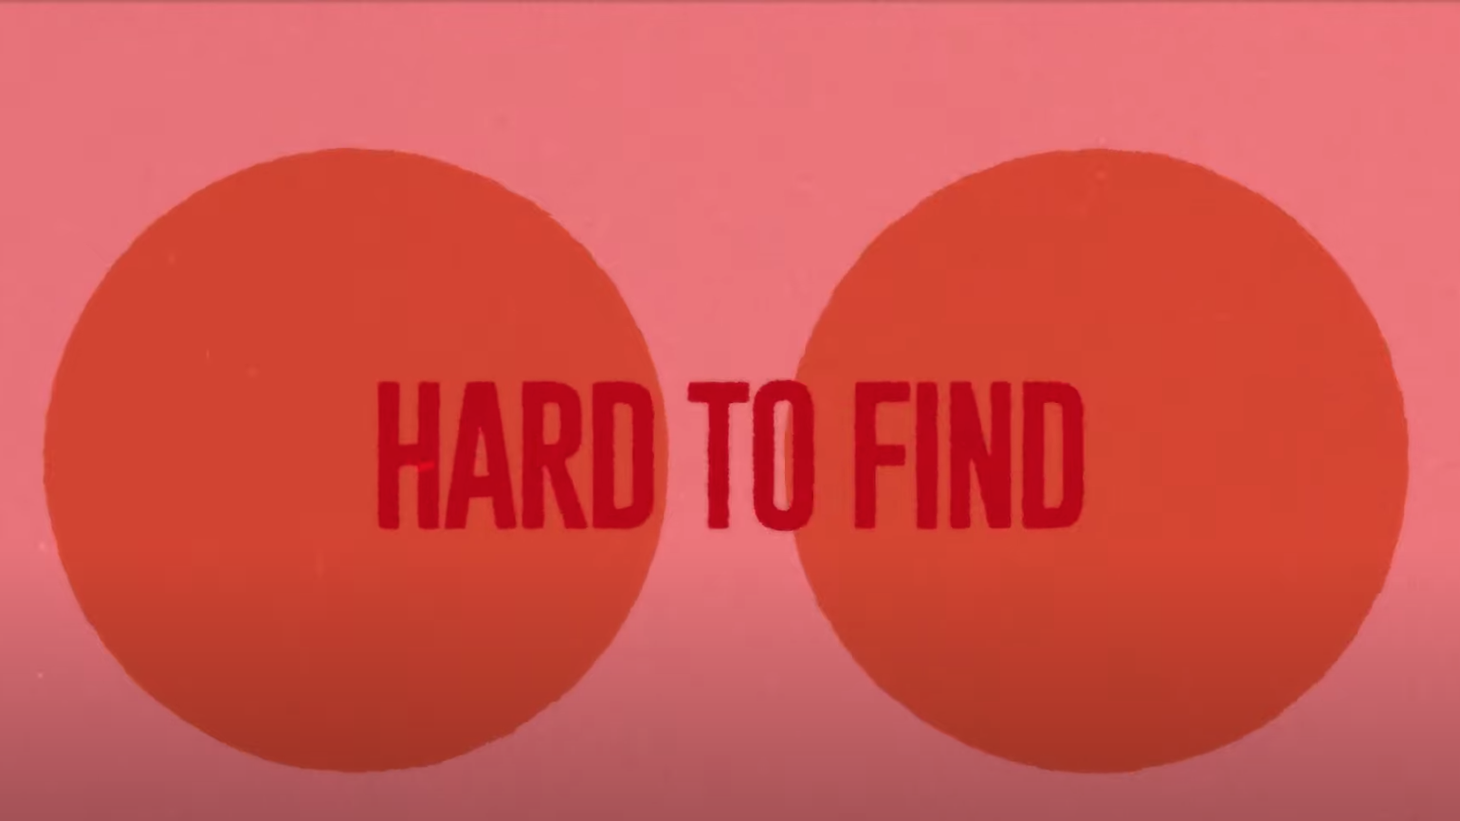 """EJ Worland's """"Hard to Find"""" is a new track that KCRW DJ Aaron Byrd recommends for this season."""